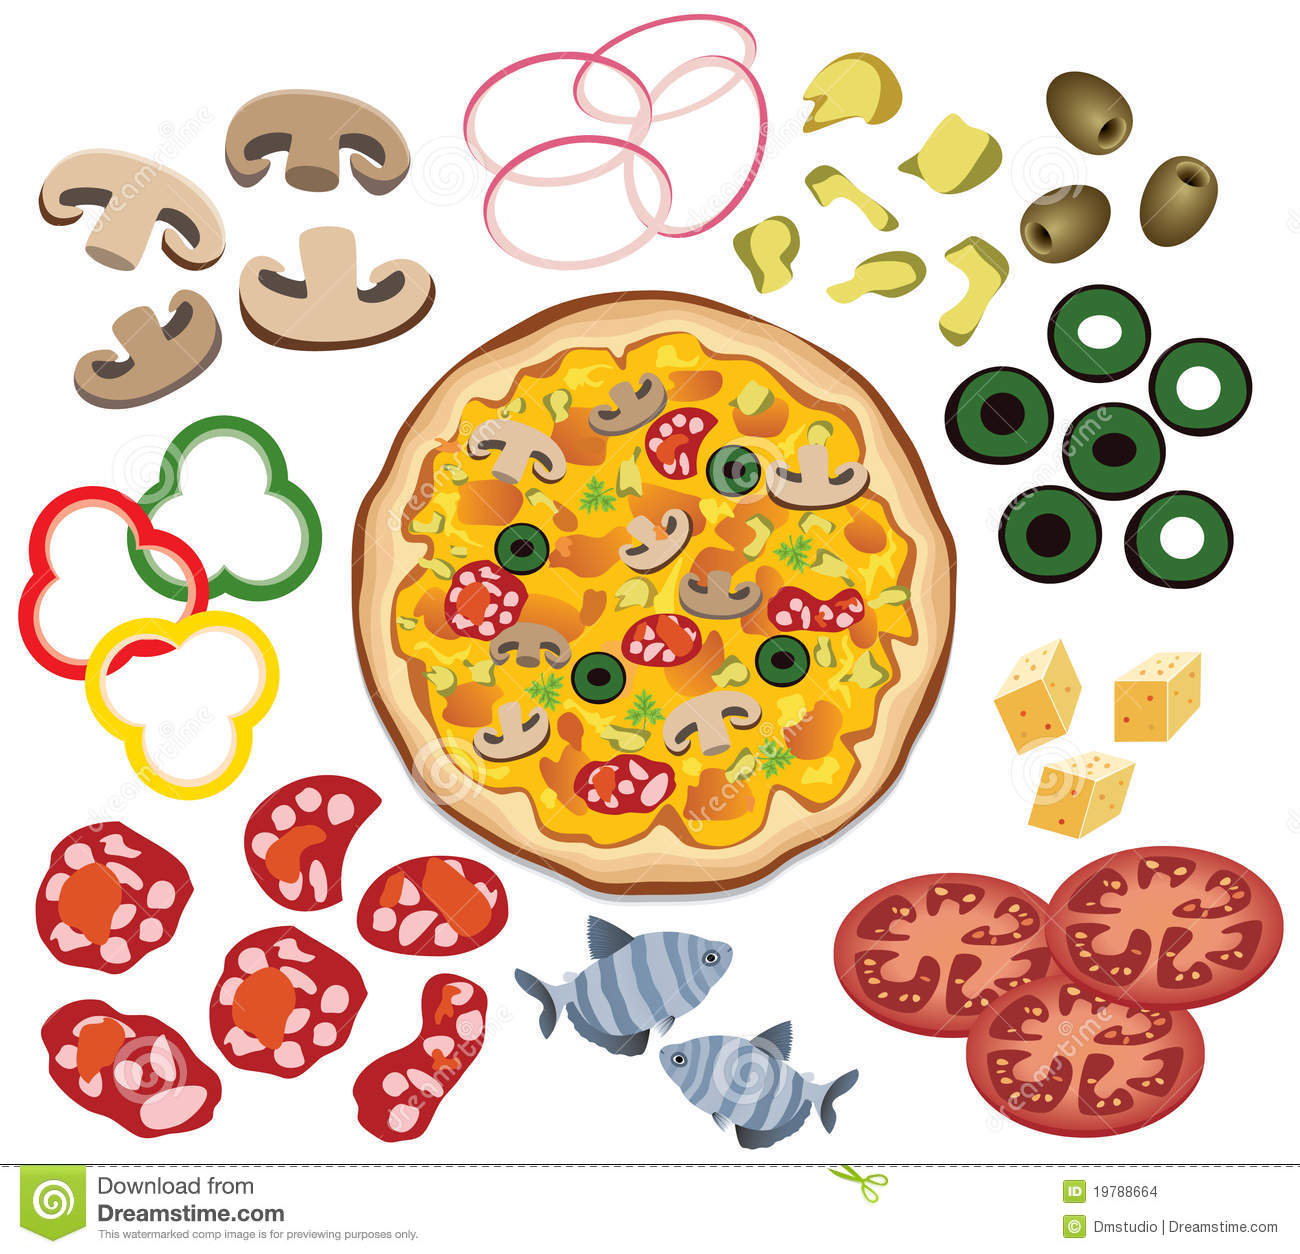 Mushroom clipart topping Search Search clipart themed pizza